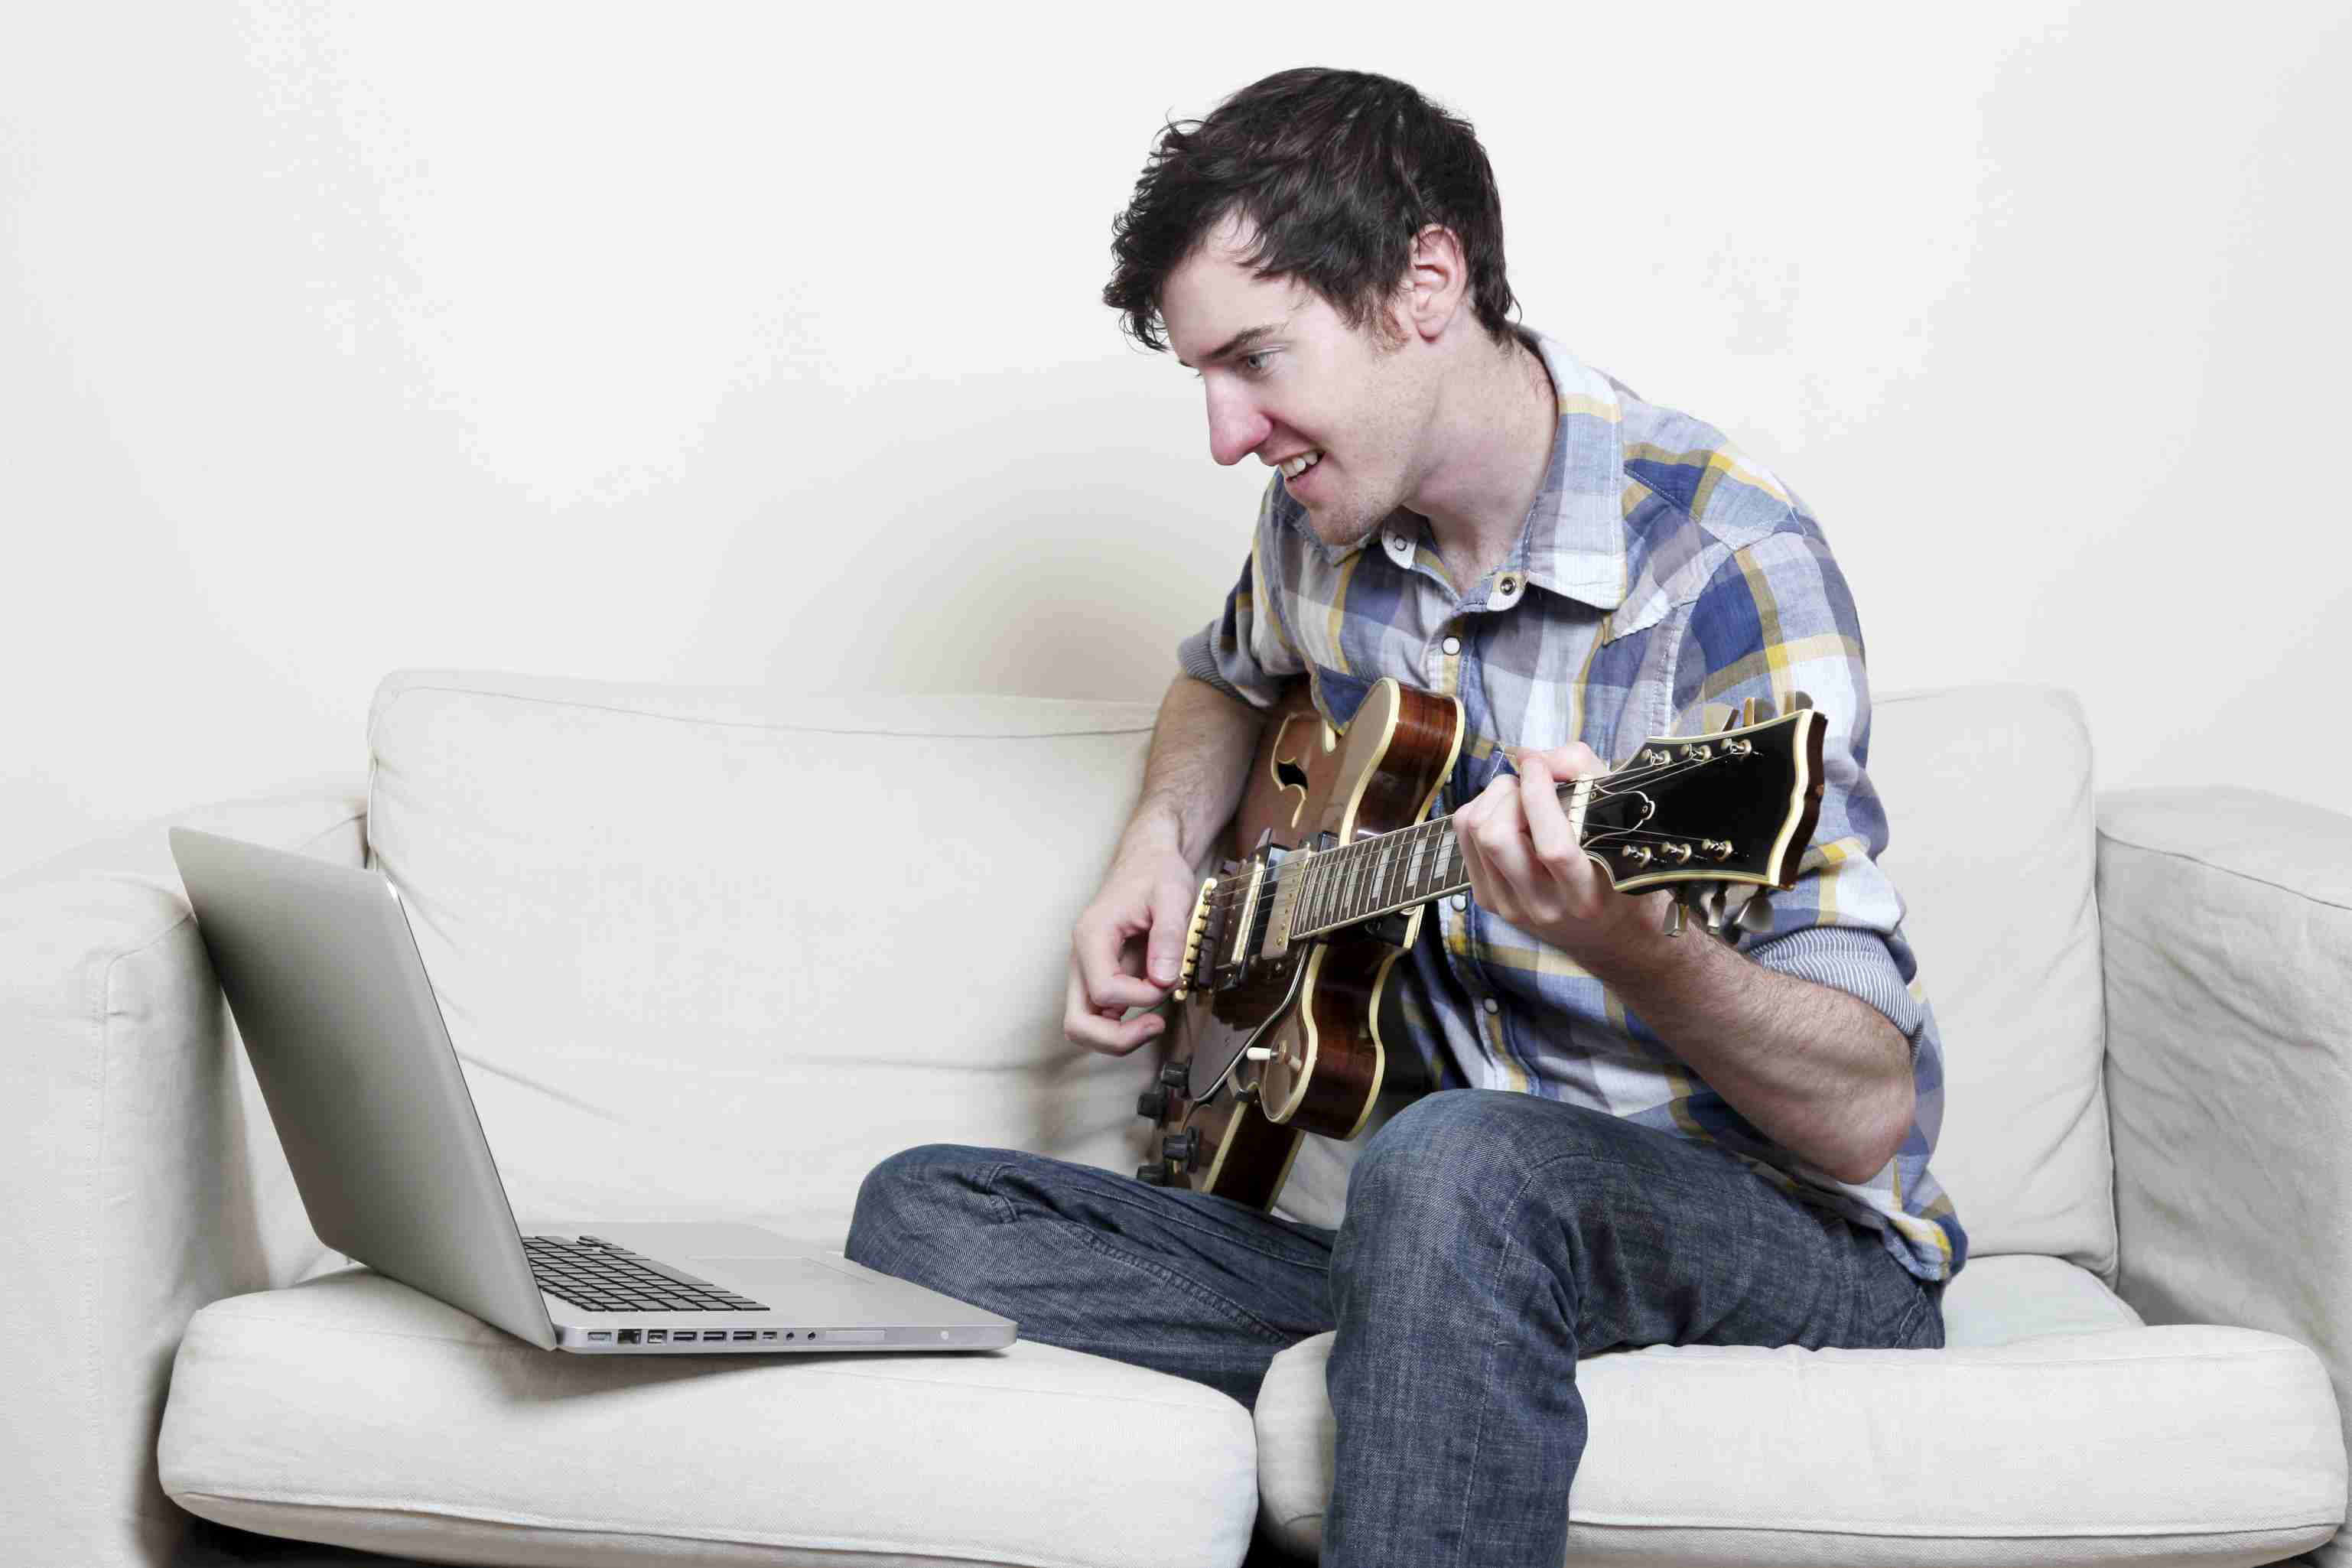 Learning Major Scale Patterns And Sus4 Chords On Guitar